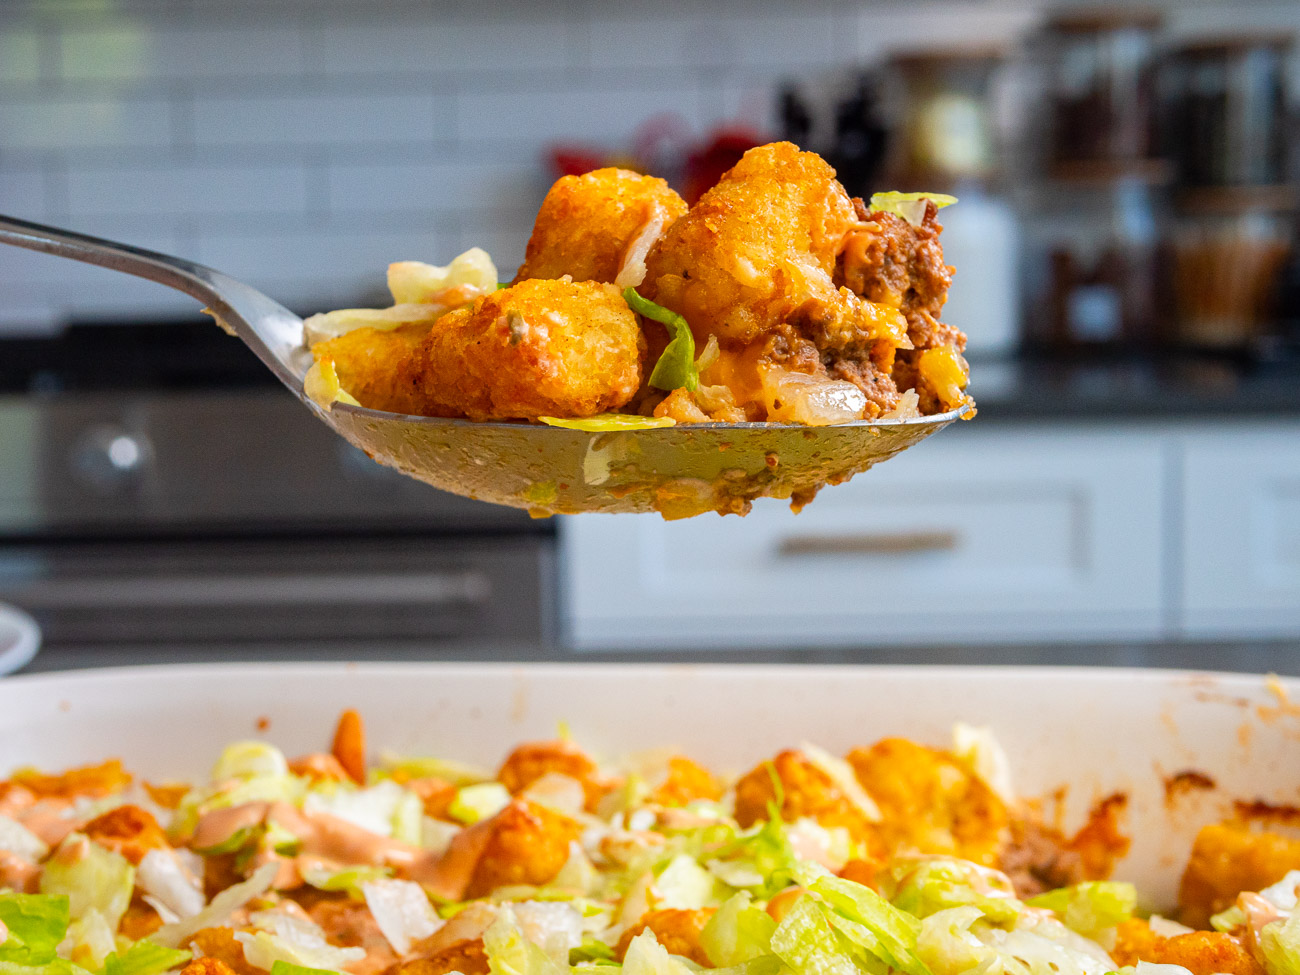 Side view of a big scoop of tater tot casserole.